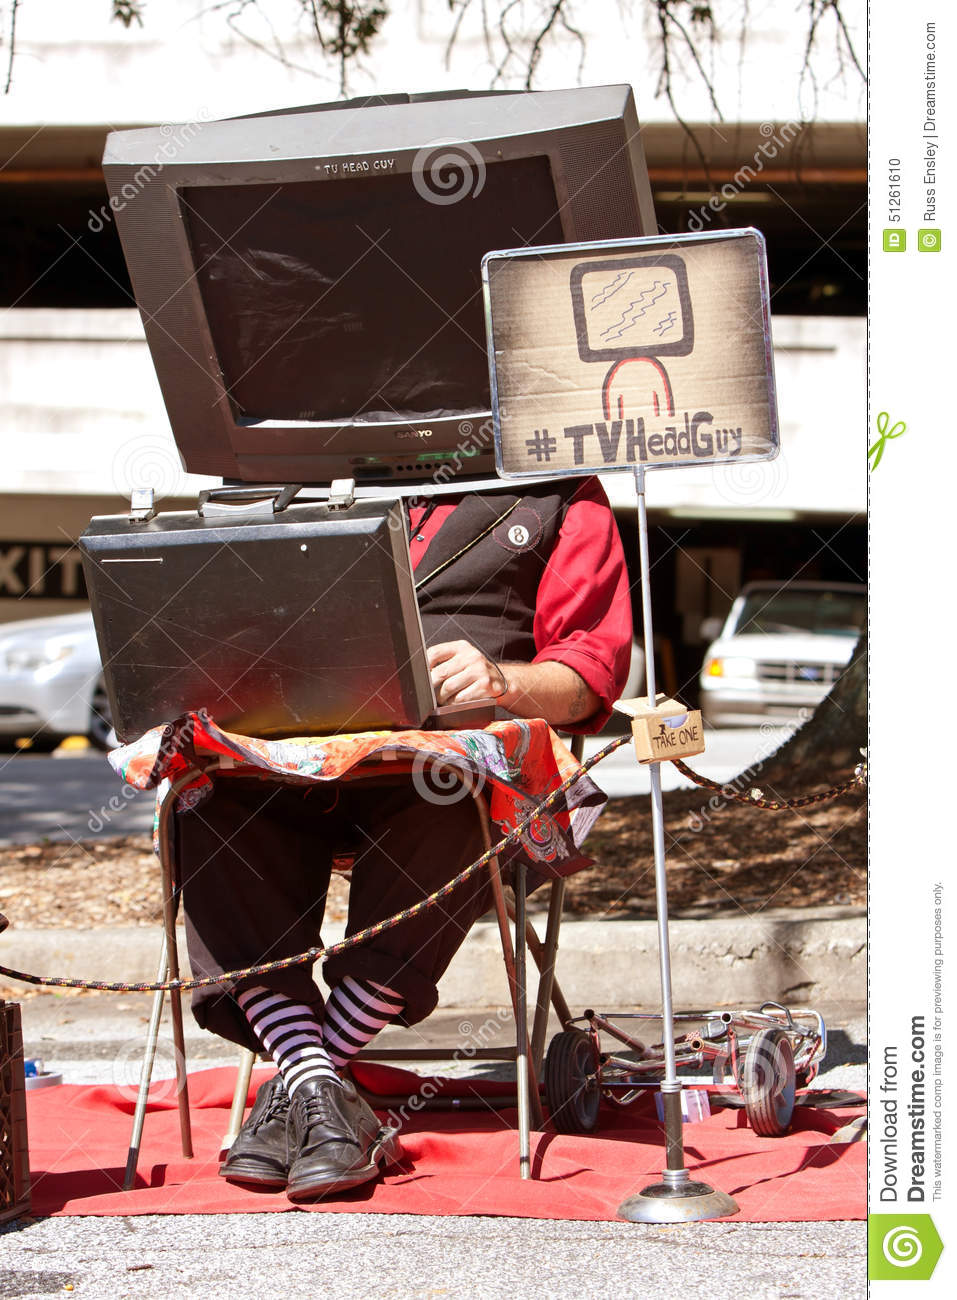 Street Performer Wears Tv On Head At Maker Faire Editorial Image Circuit Board Images Of